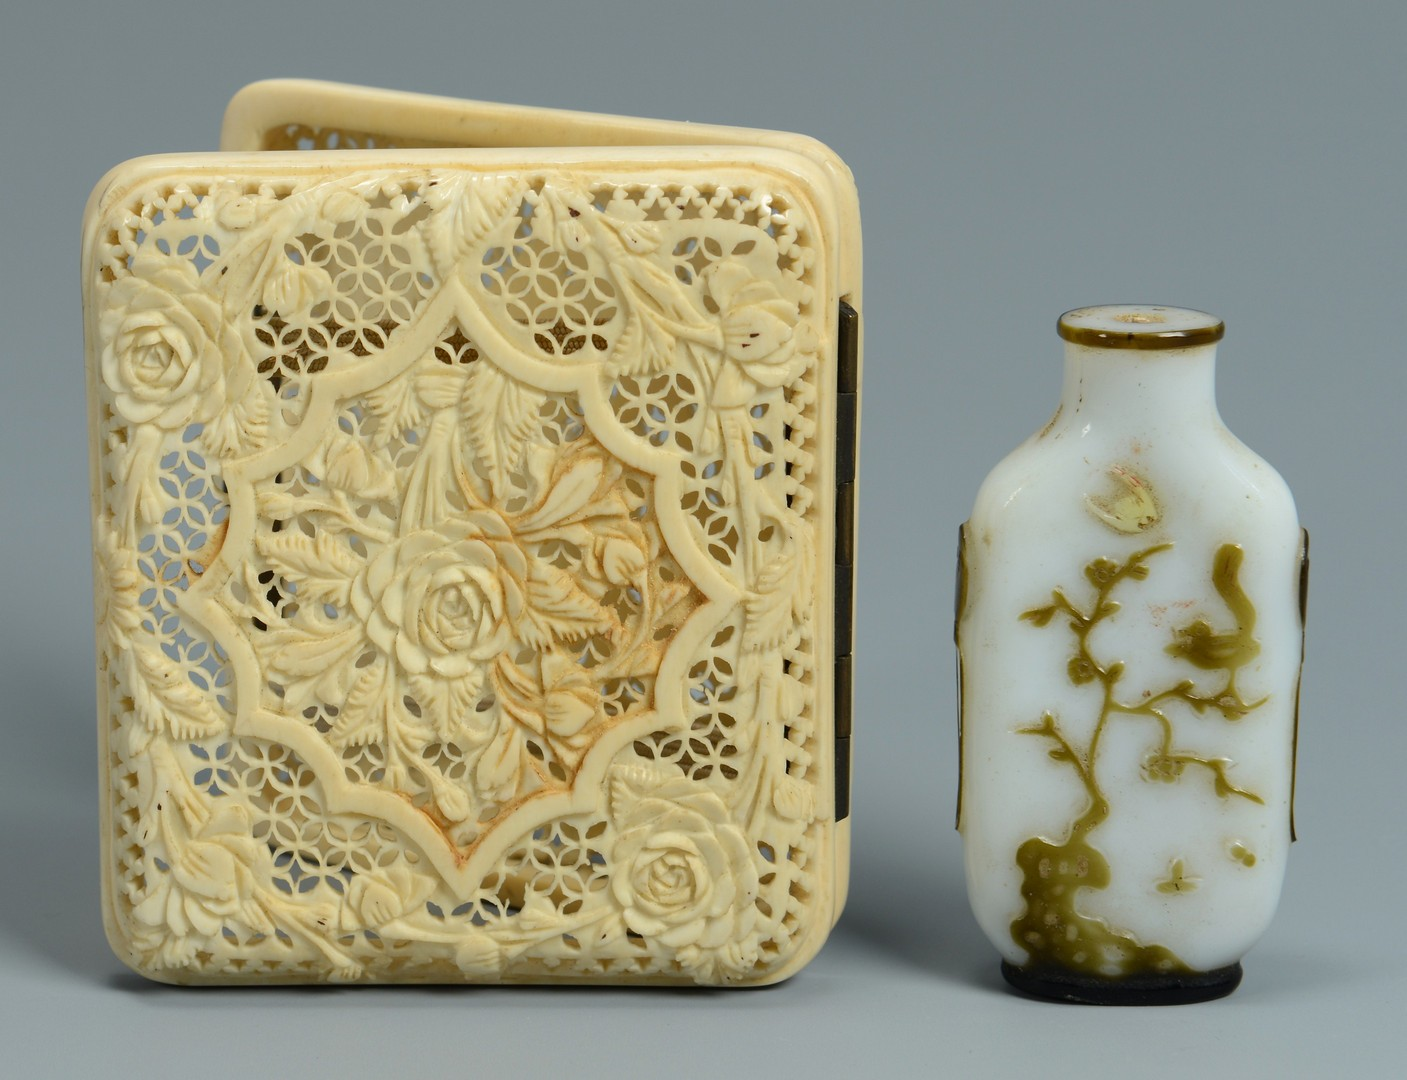 Lot 3383249: Group of 5 Asian Collectibles